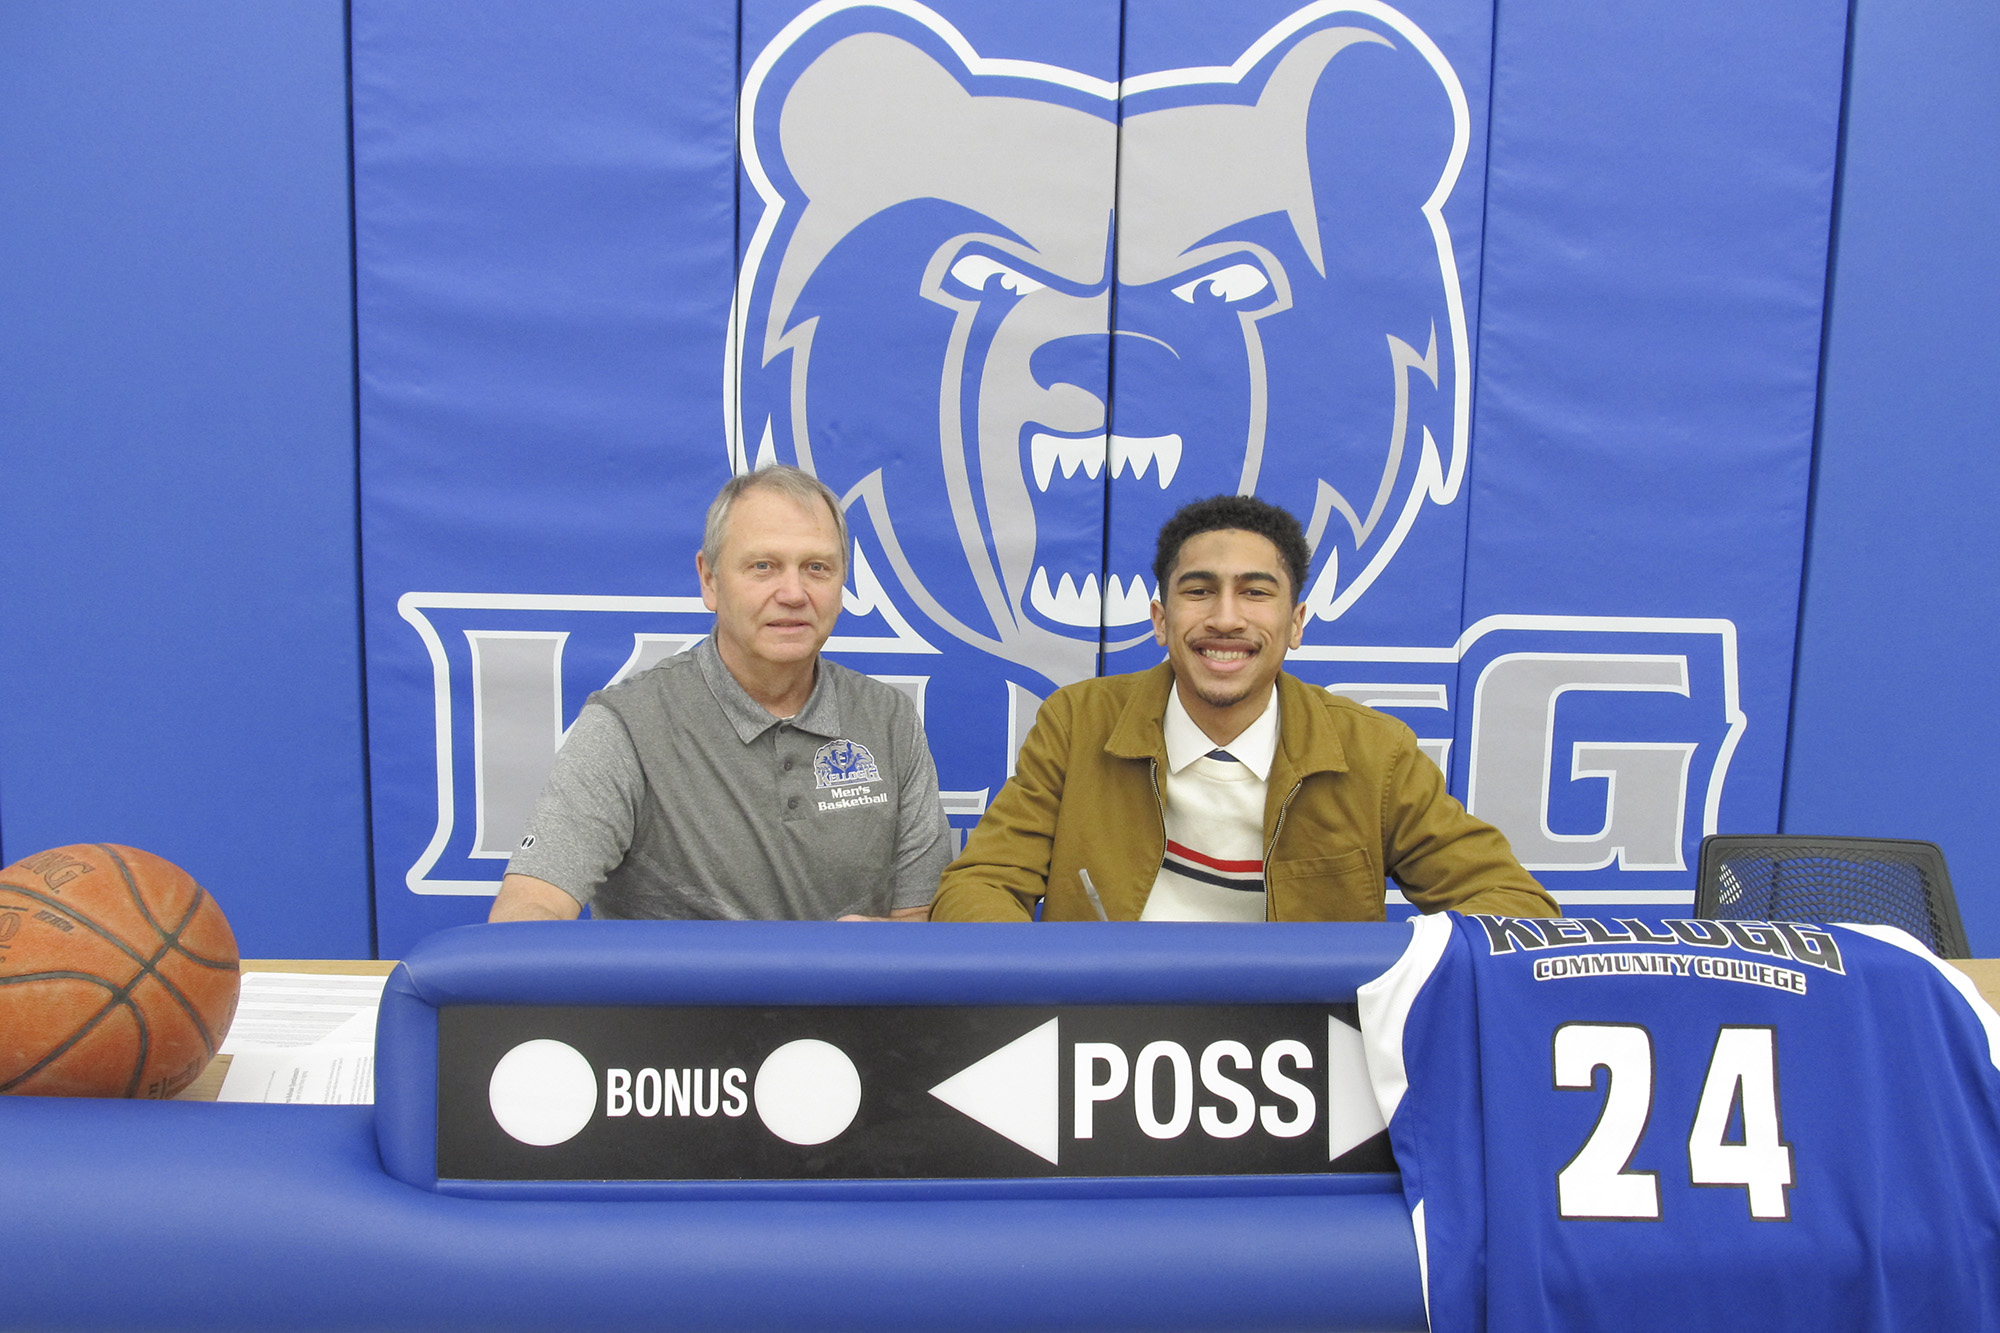 Pictured, from left to right, are KCC's Head Men's Basketball Coach Gary Sprague and Alika Edmonds.